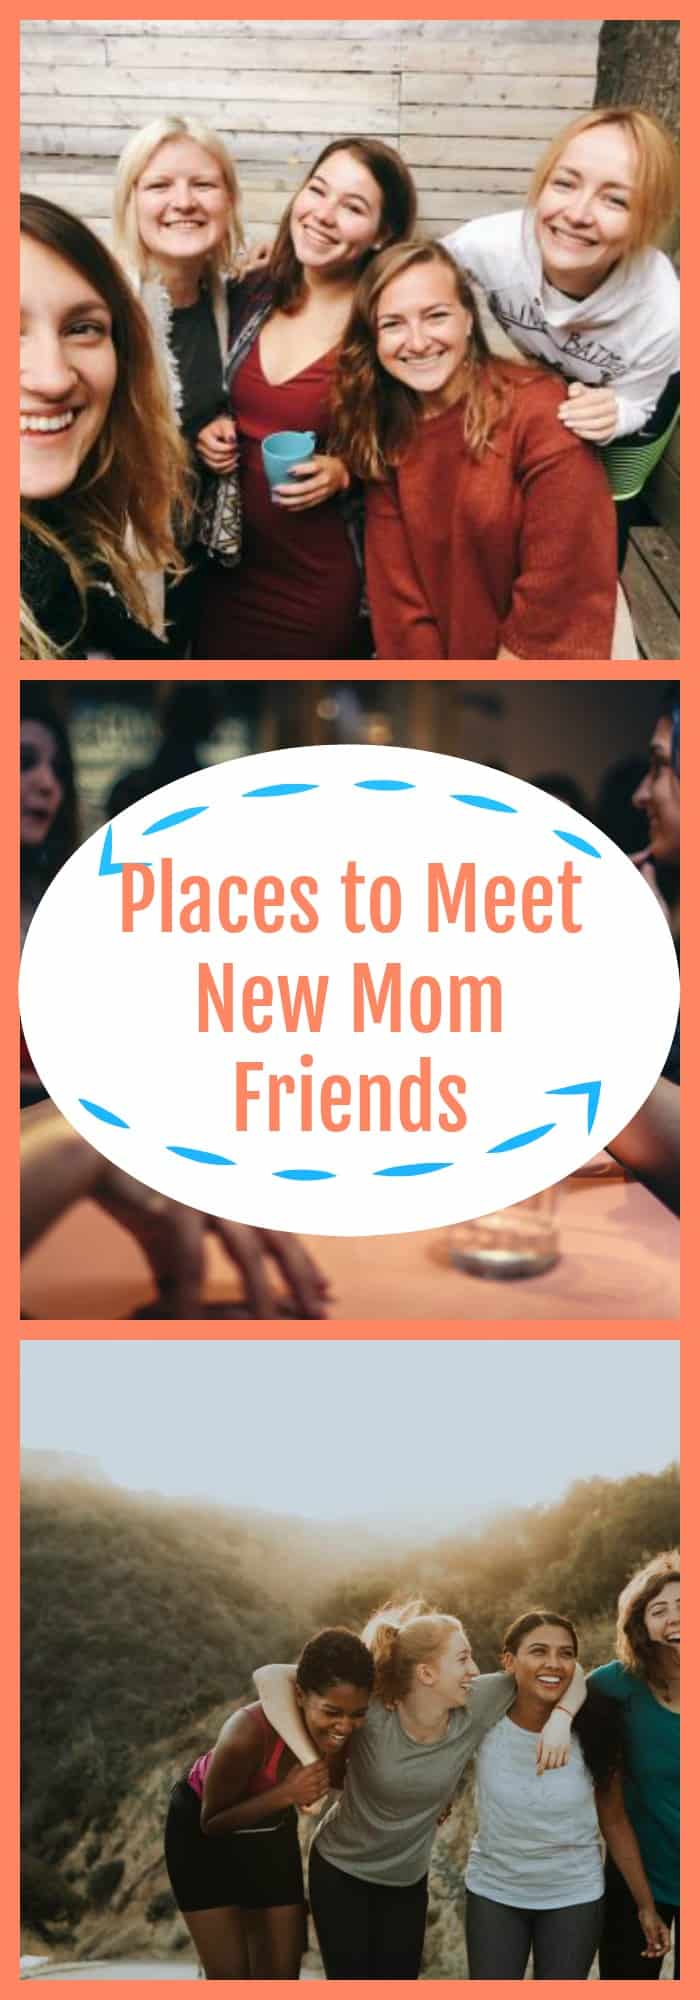 Places to Meet New Mom Friends